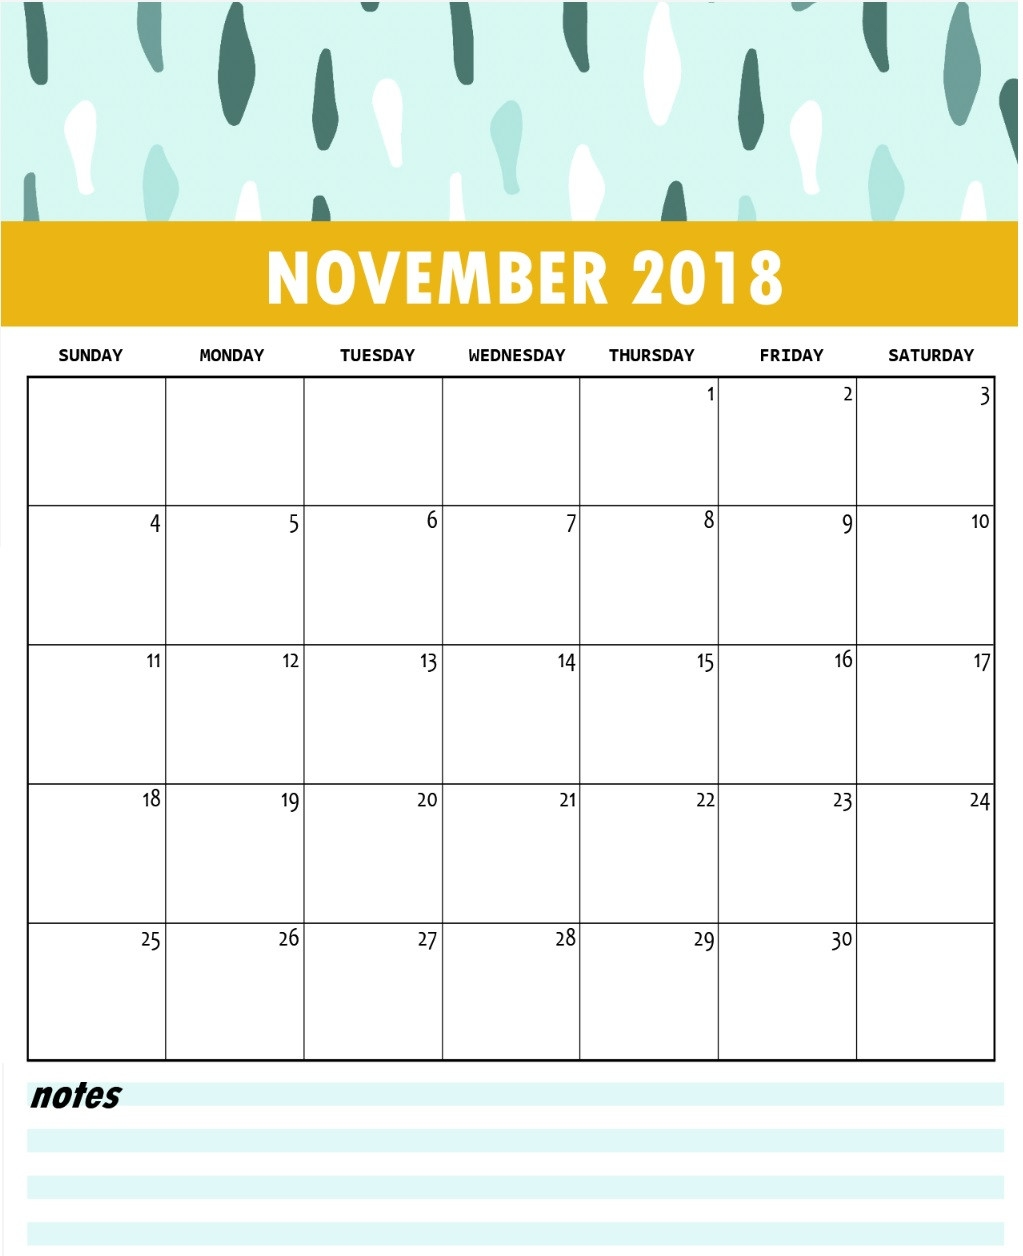 landscape portrait calendar template of november 2018 downlaod::November 2018 Calendar Template